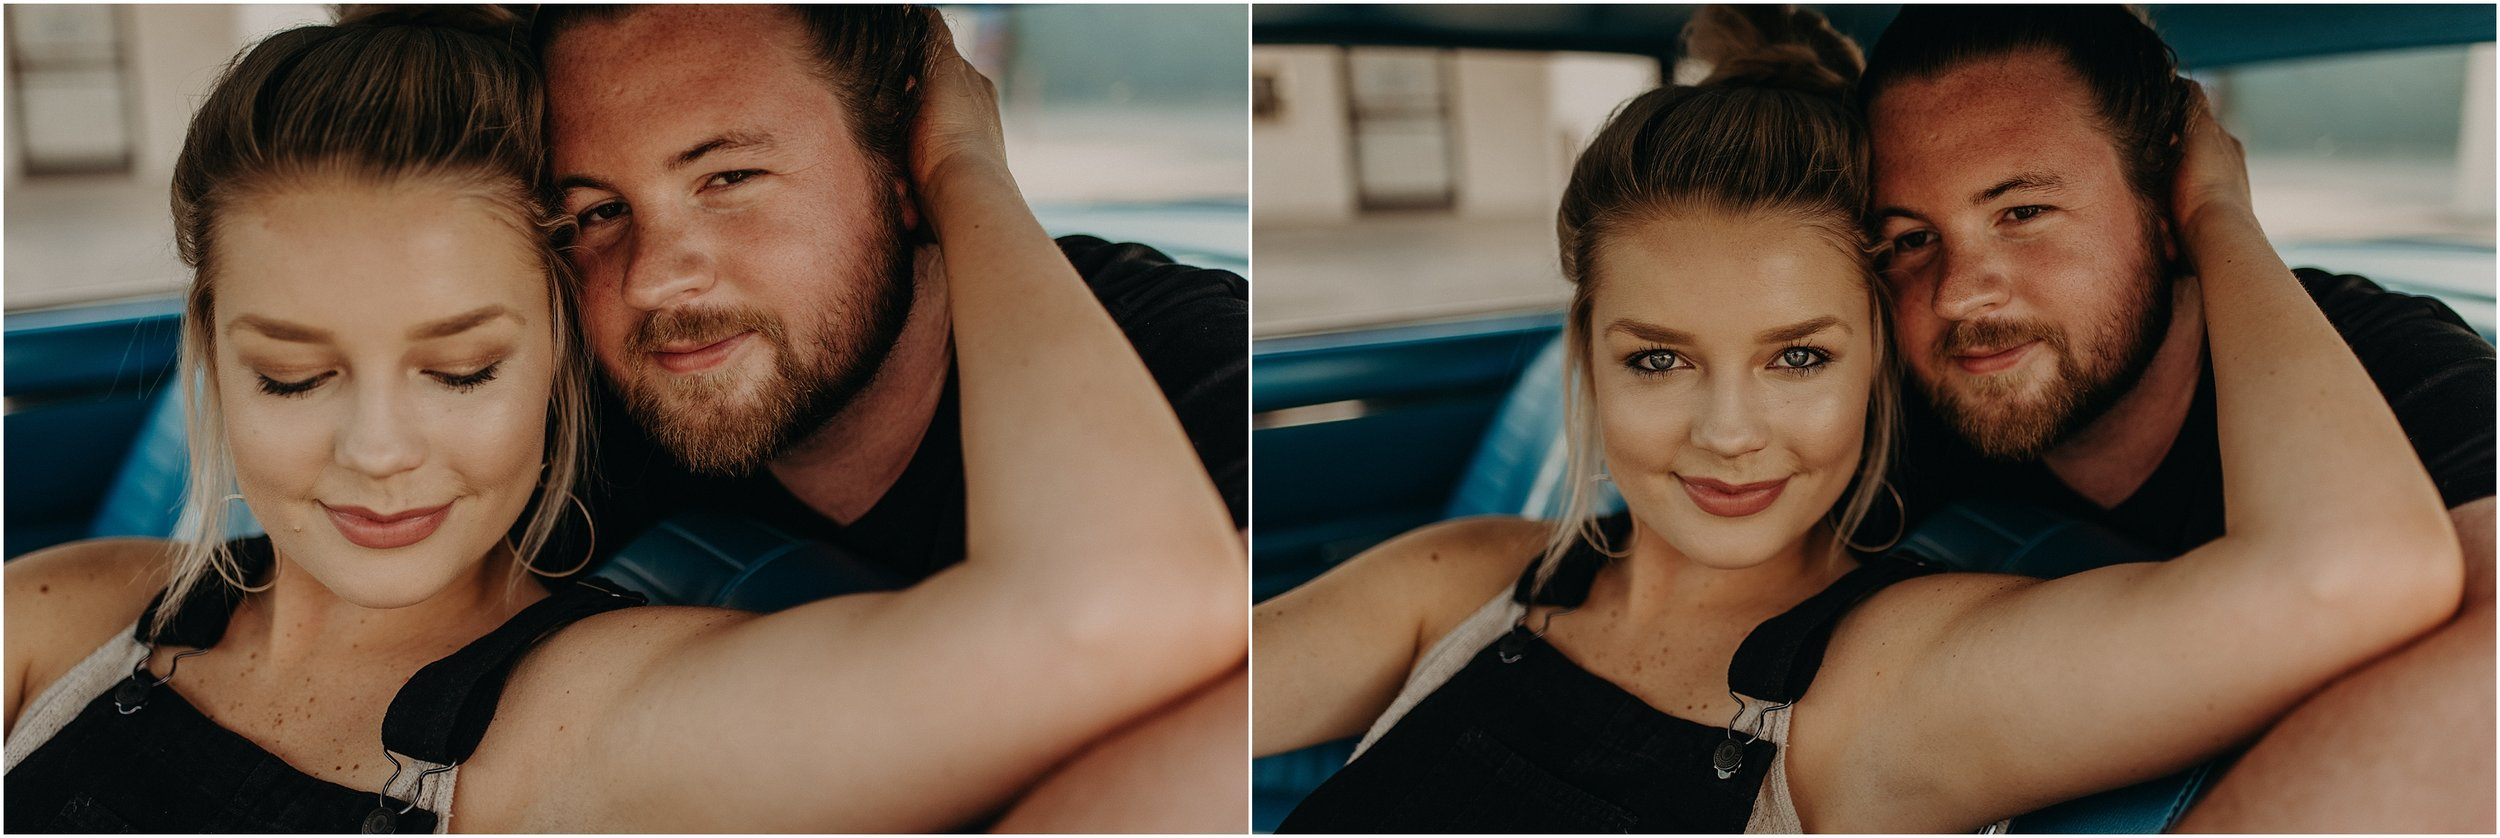 Love story photo session at a car wash in Chattanooga, Tennessee with Taylor English Photography